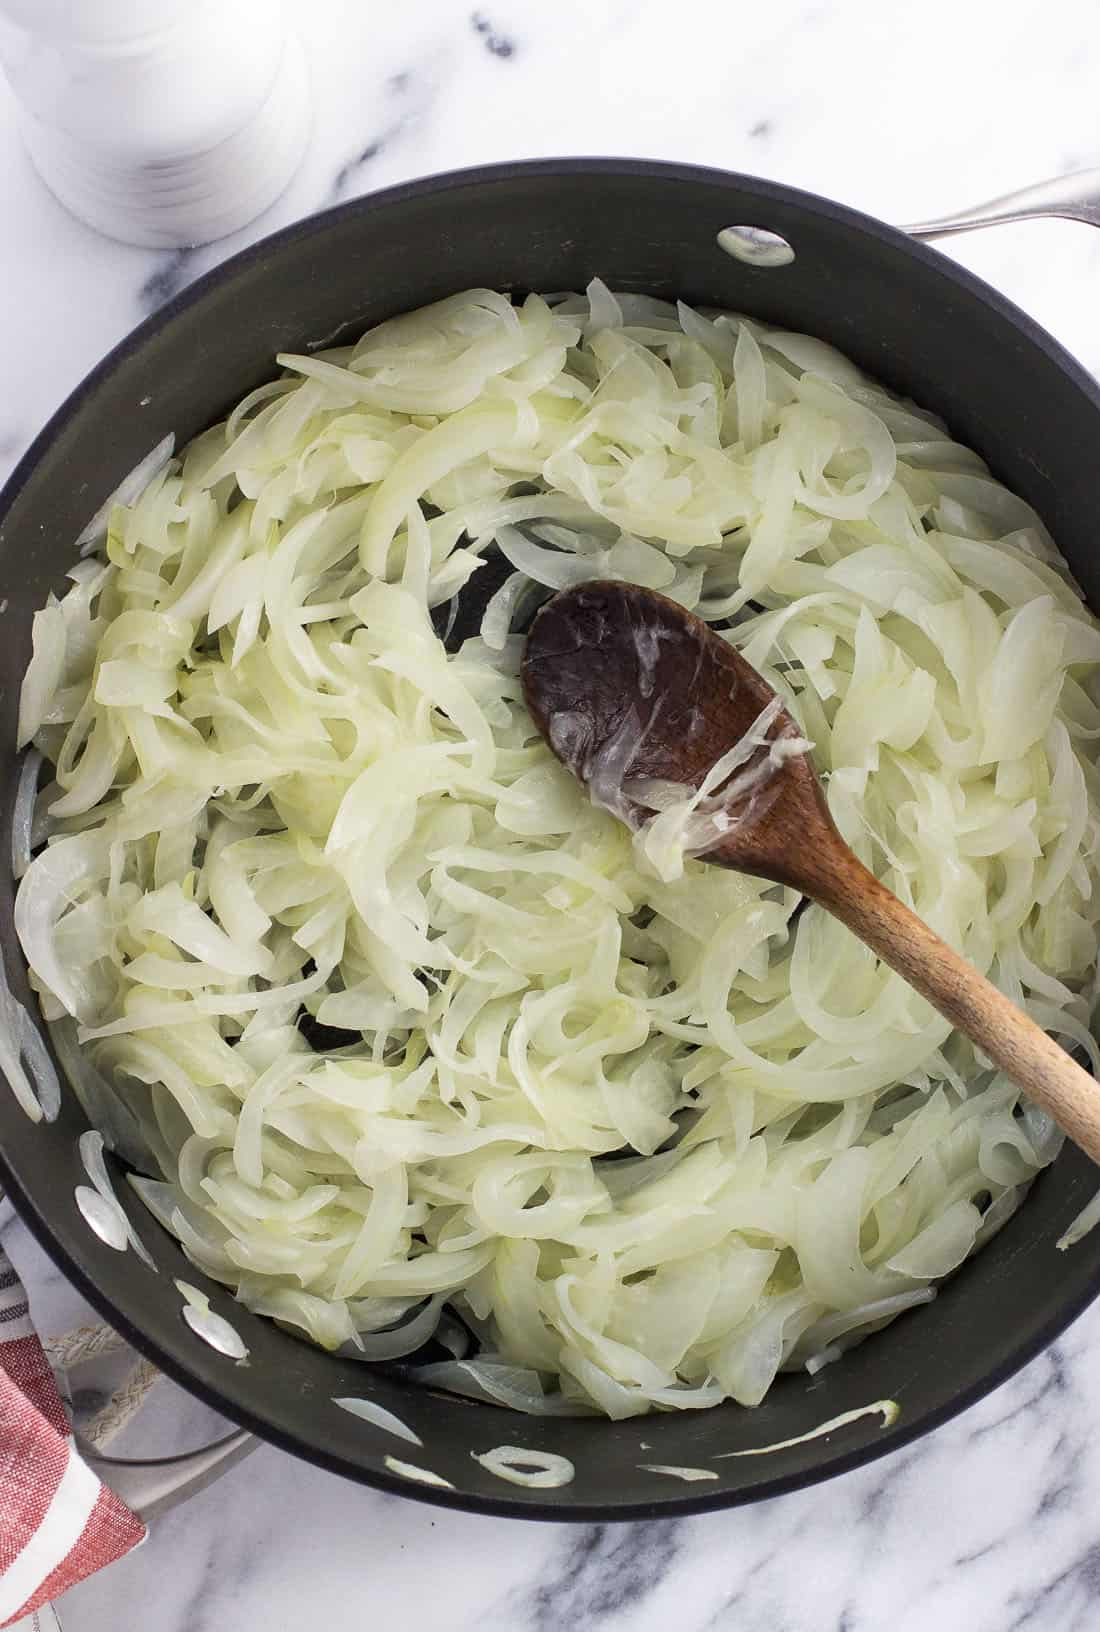 Curious how to make caramelized onions? It's not hard! Three ingredients are all you need to make this simple condiment that takes any meal up a notch. Caramelized onions make a great addition to sandwiches (especially grilled cheeses), salads, omelettes or frittatas, and more.